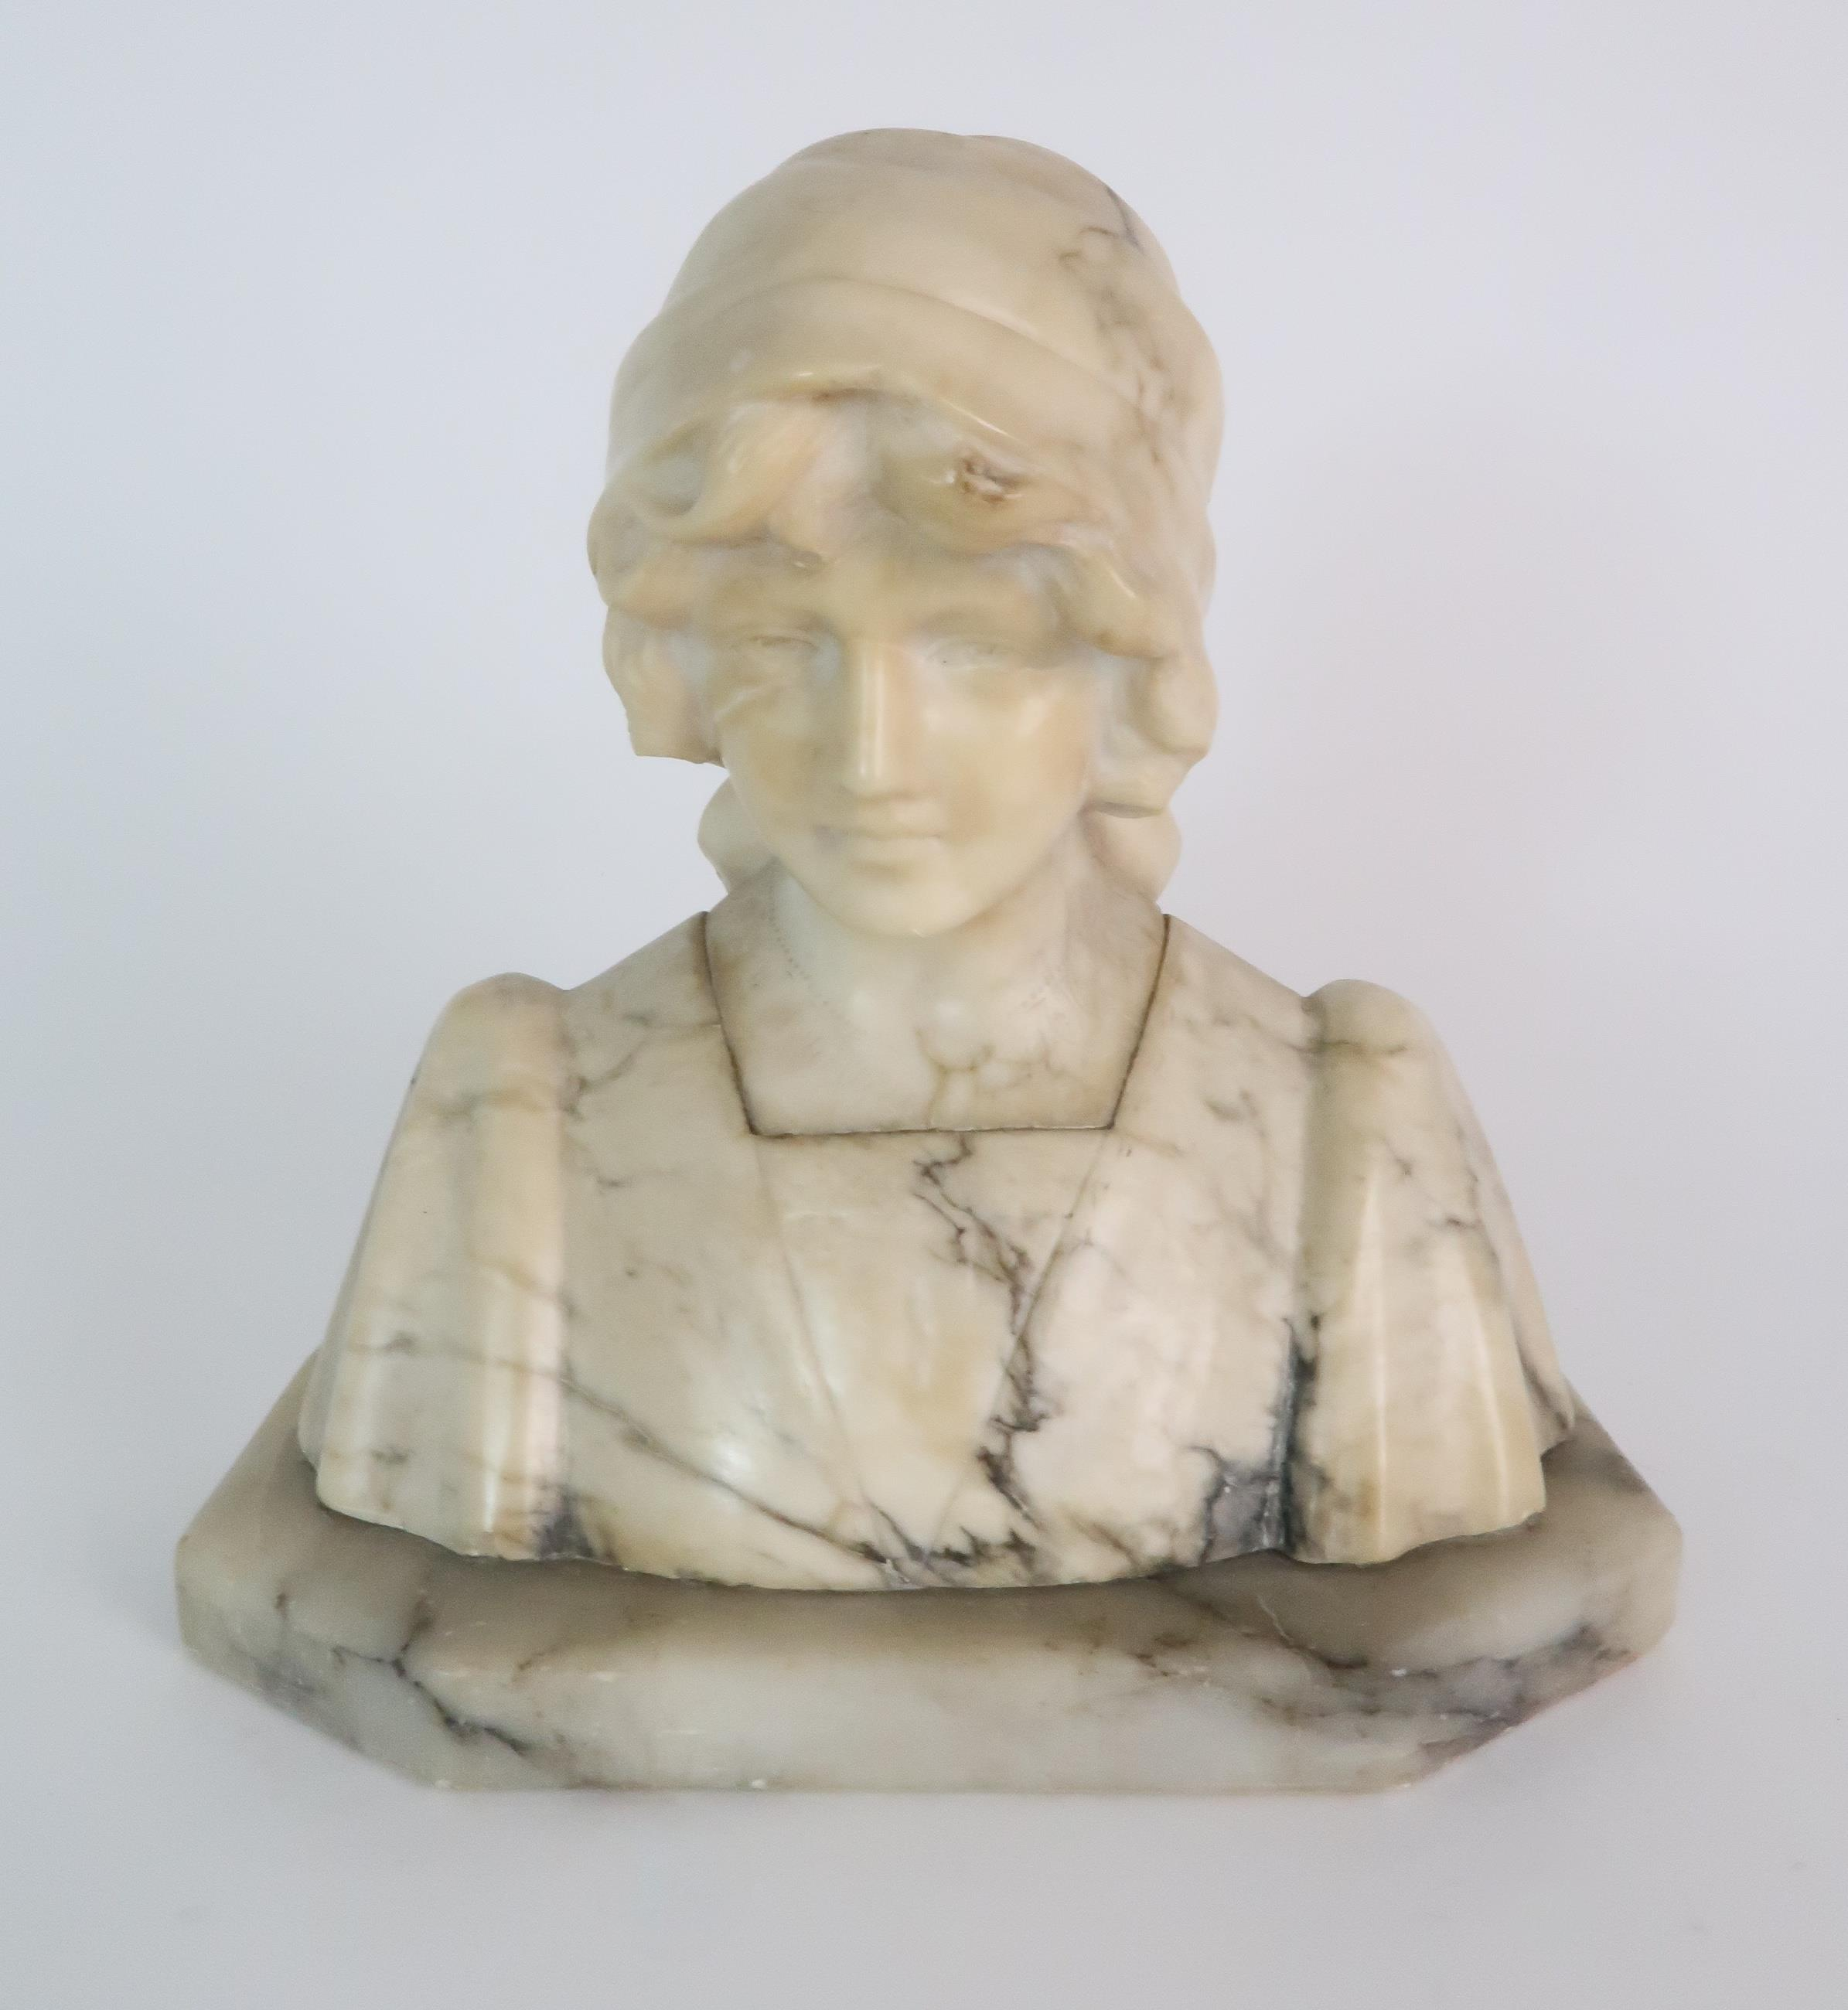 AN ALABASTER BUST OF A GIRL IN A HEAD SCARF upon shaped base, 25cm high Condition Report: